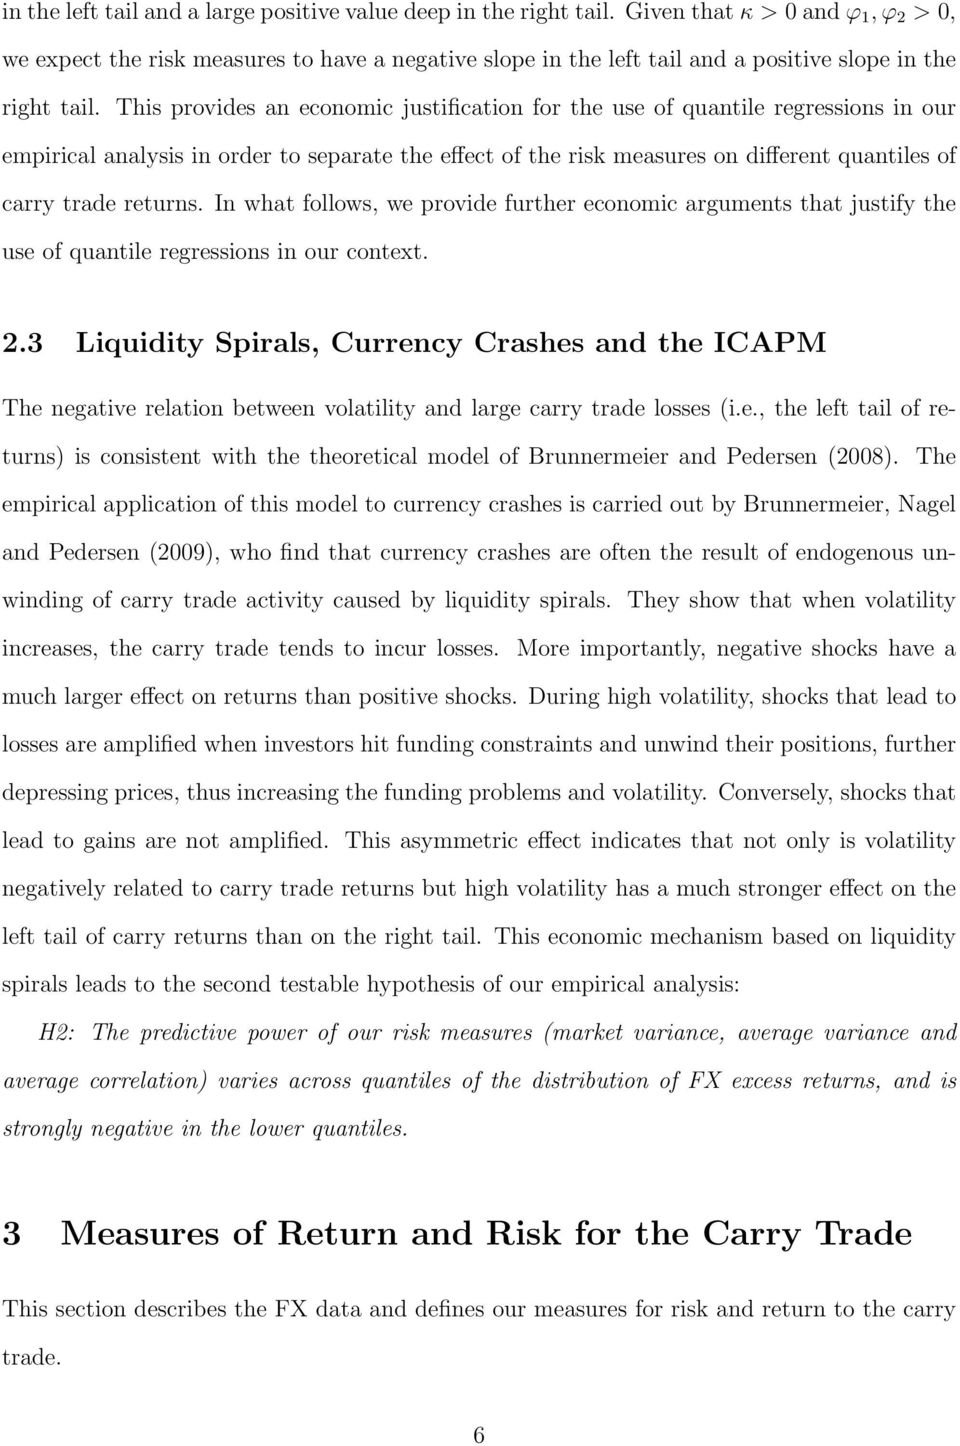 This provides an economic justification for the use of quantile regressions in our empirical analysis in order to separate the effect of the risk measures on different quantiles of carry trade